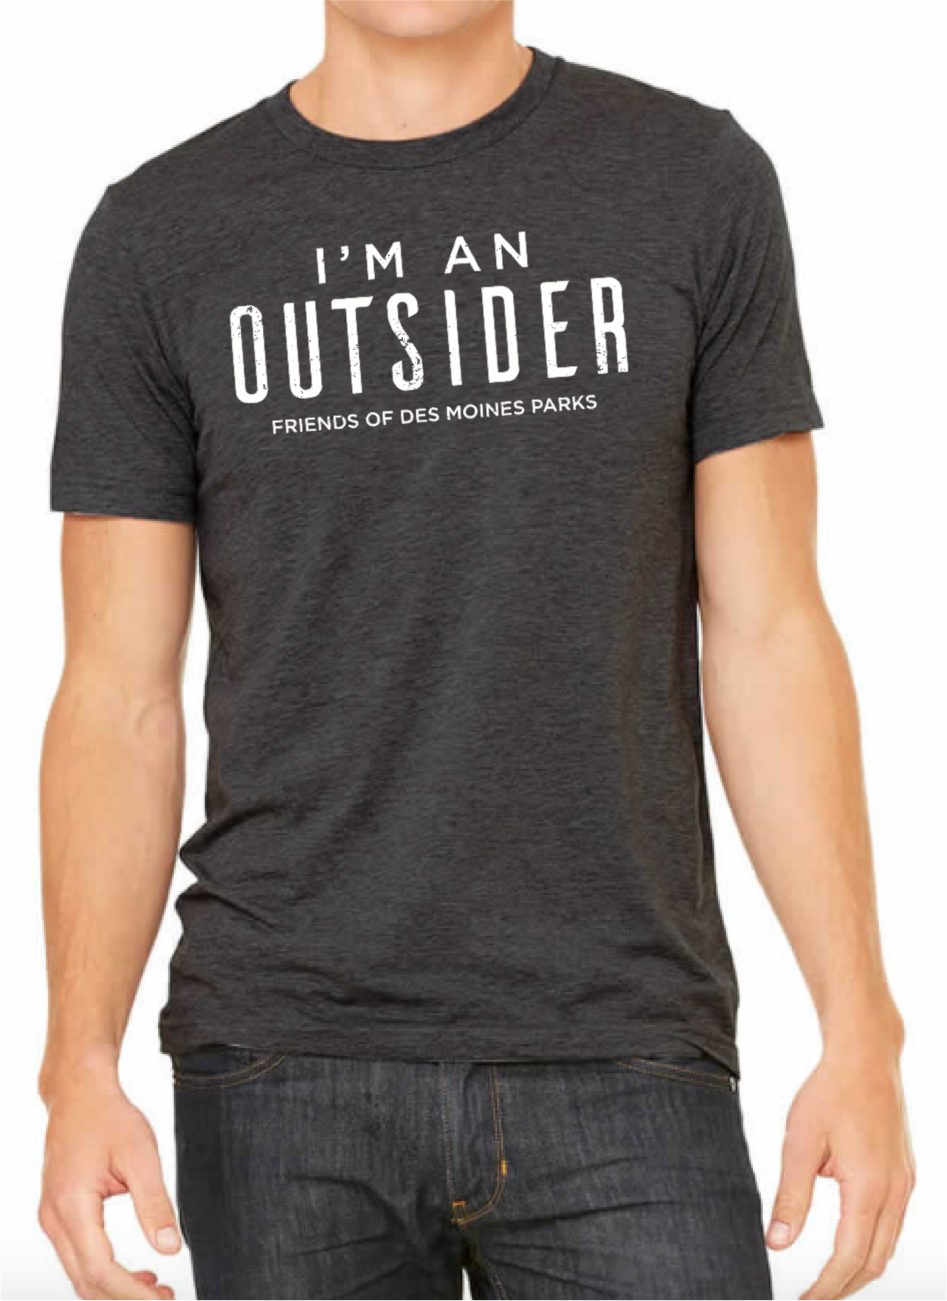 'I'm An Outsider' Tee